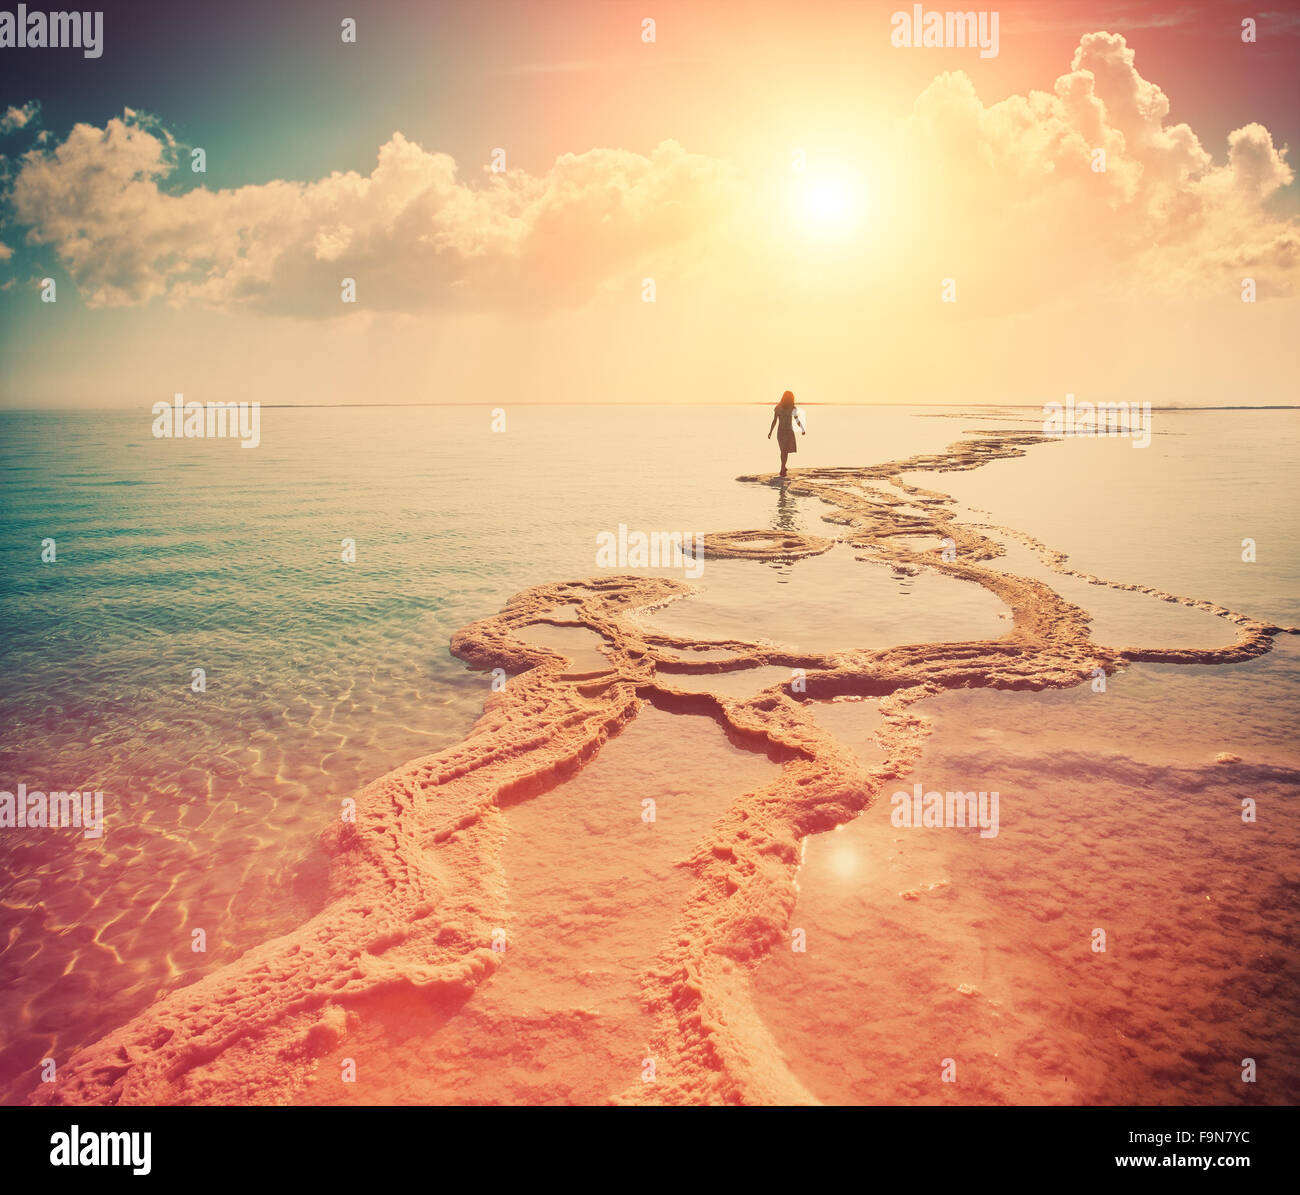 Silhouette of young woman walking on Dead Sea - Stock Image